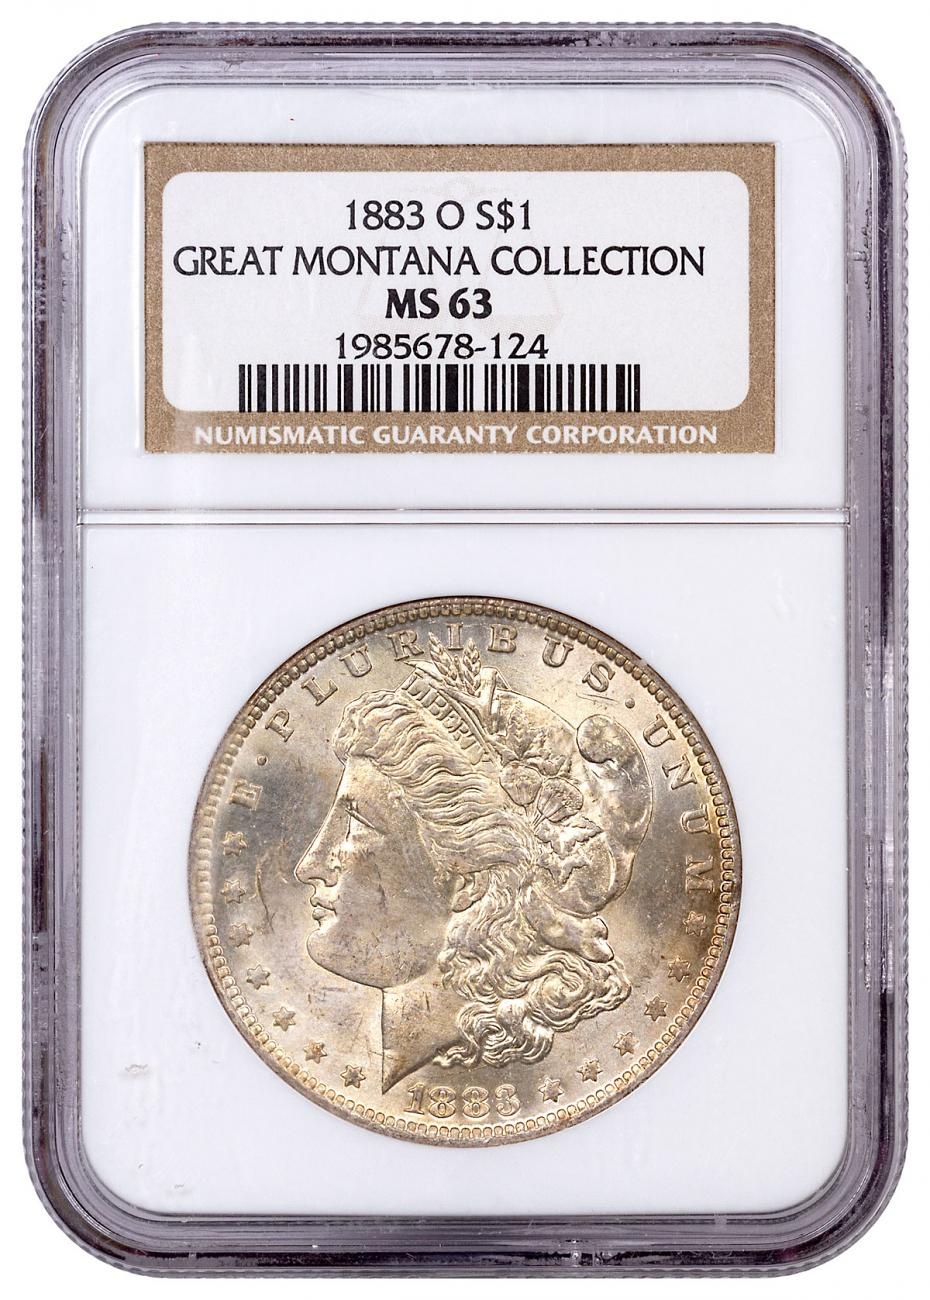 1883-O Morgan Silver Dollar From the Great Montana Collection NGC MS63 Toned CPCR 124